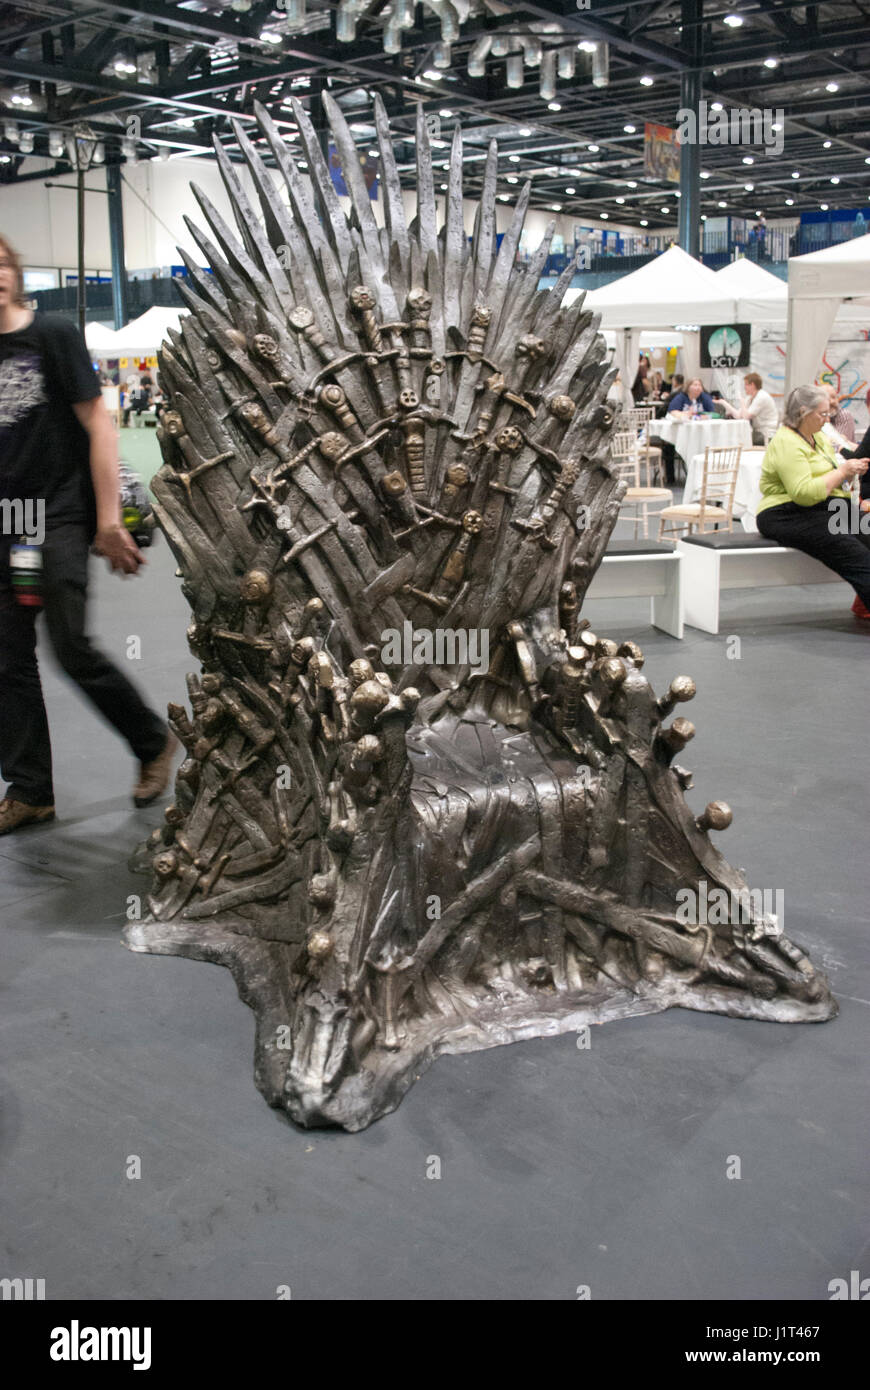 Throne from GRR Martin's Game Of Throne / A Story of Ice and Fire at the Worldcon / Loncon Science fiction convention Stock Photo